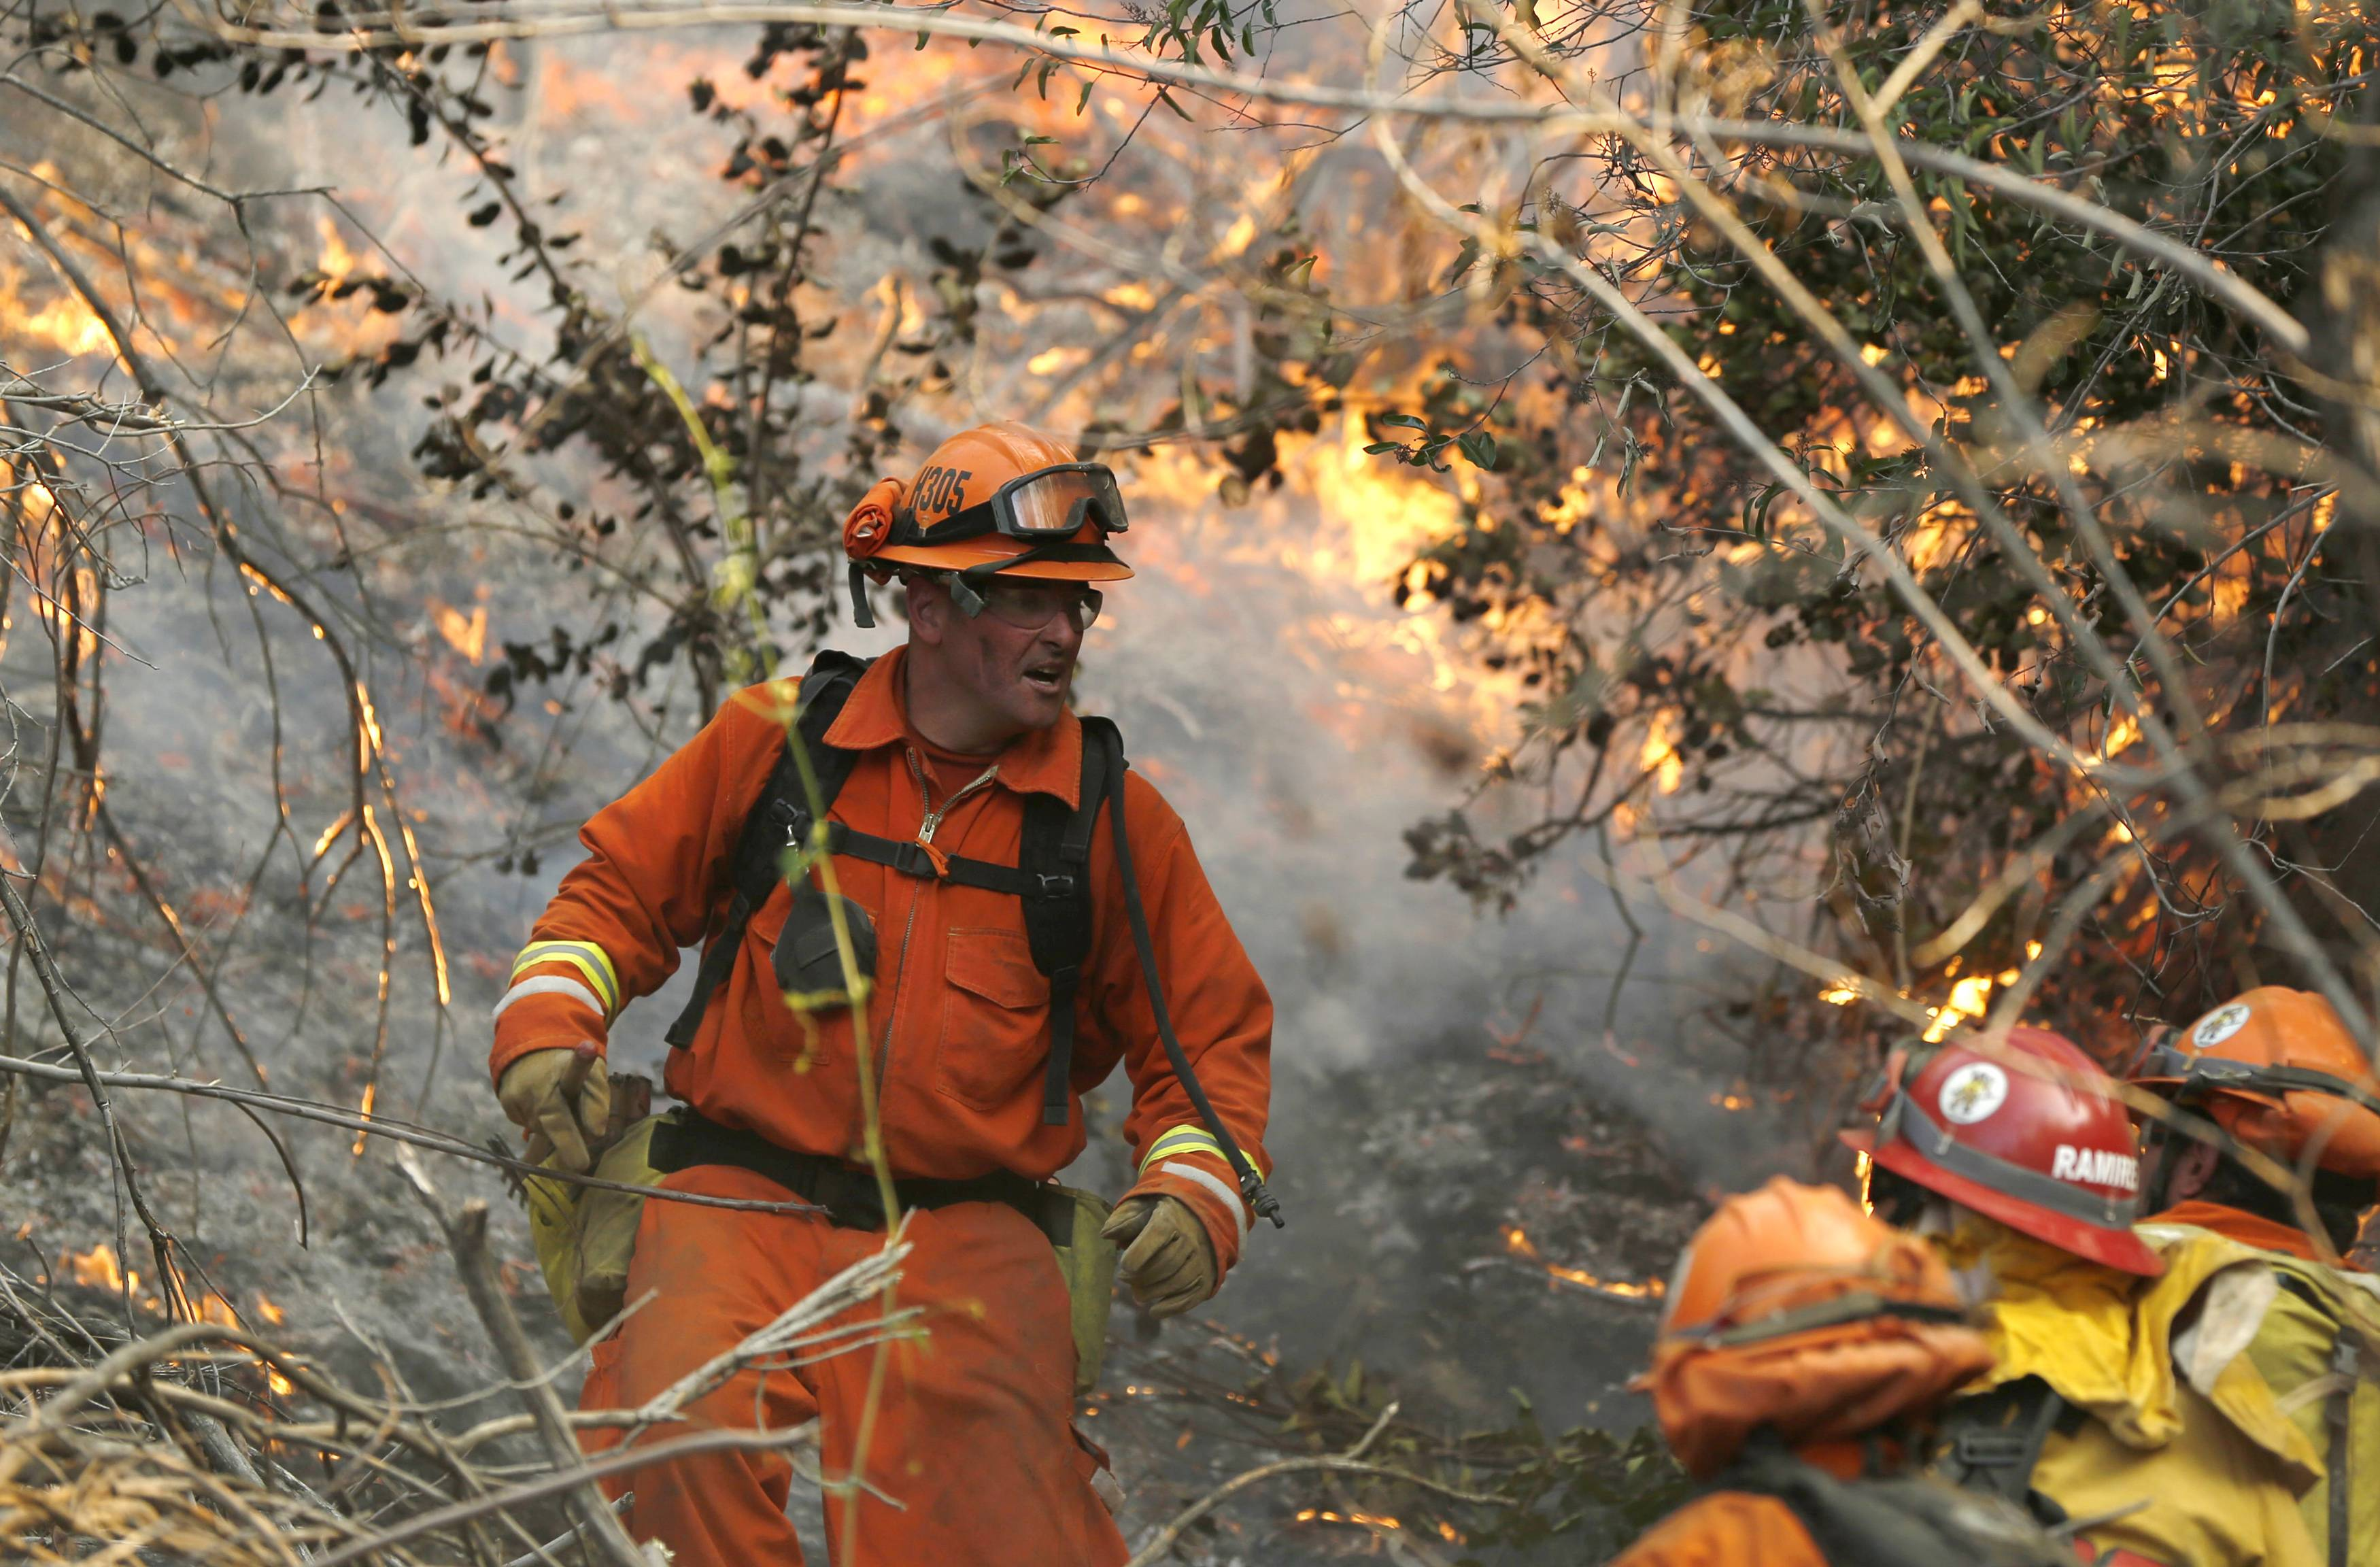 Colby fire wildfire burns more than 1,700 acres, destroys ...